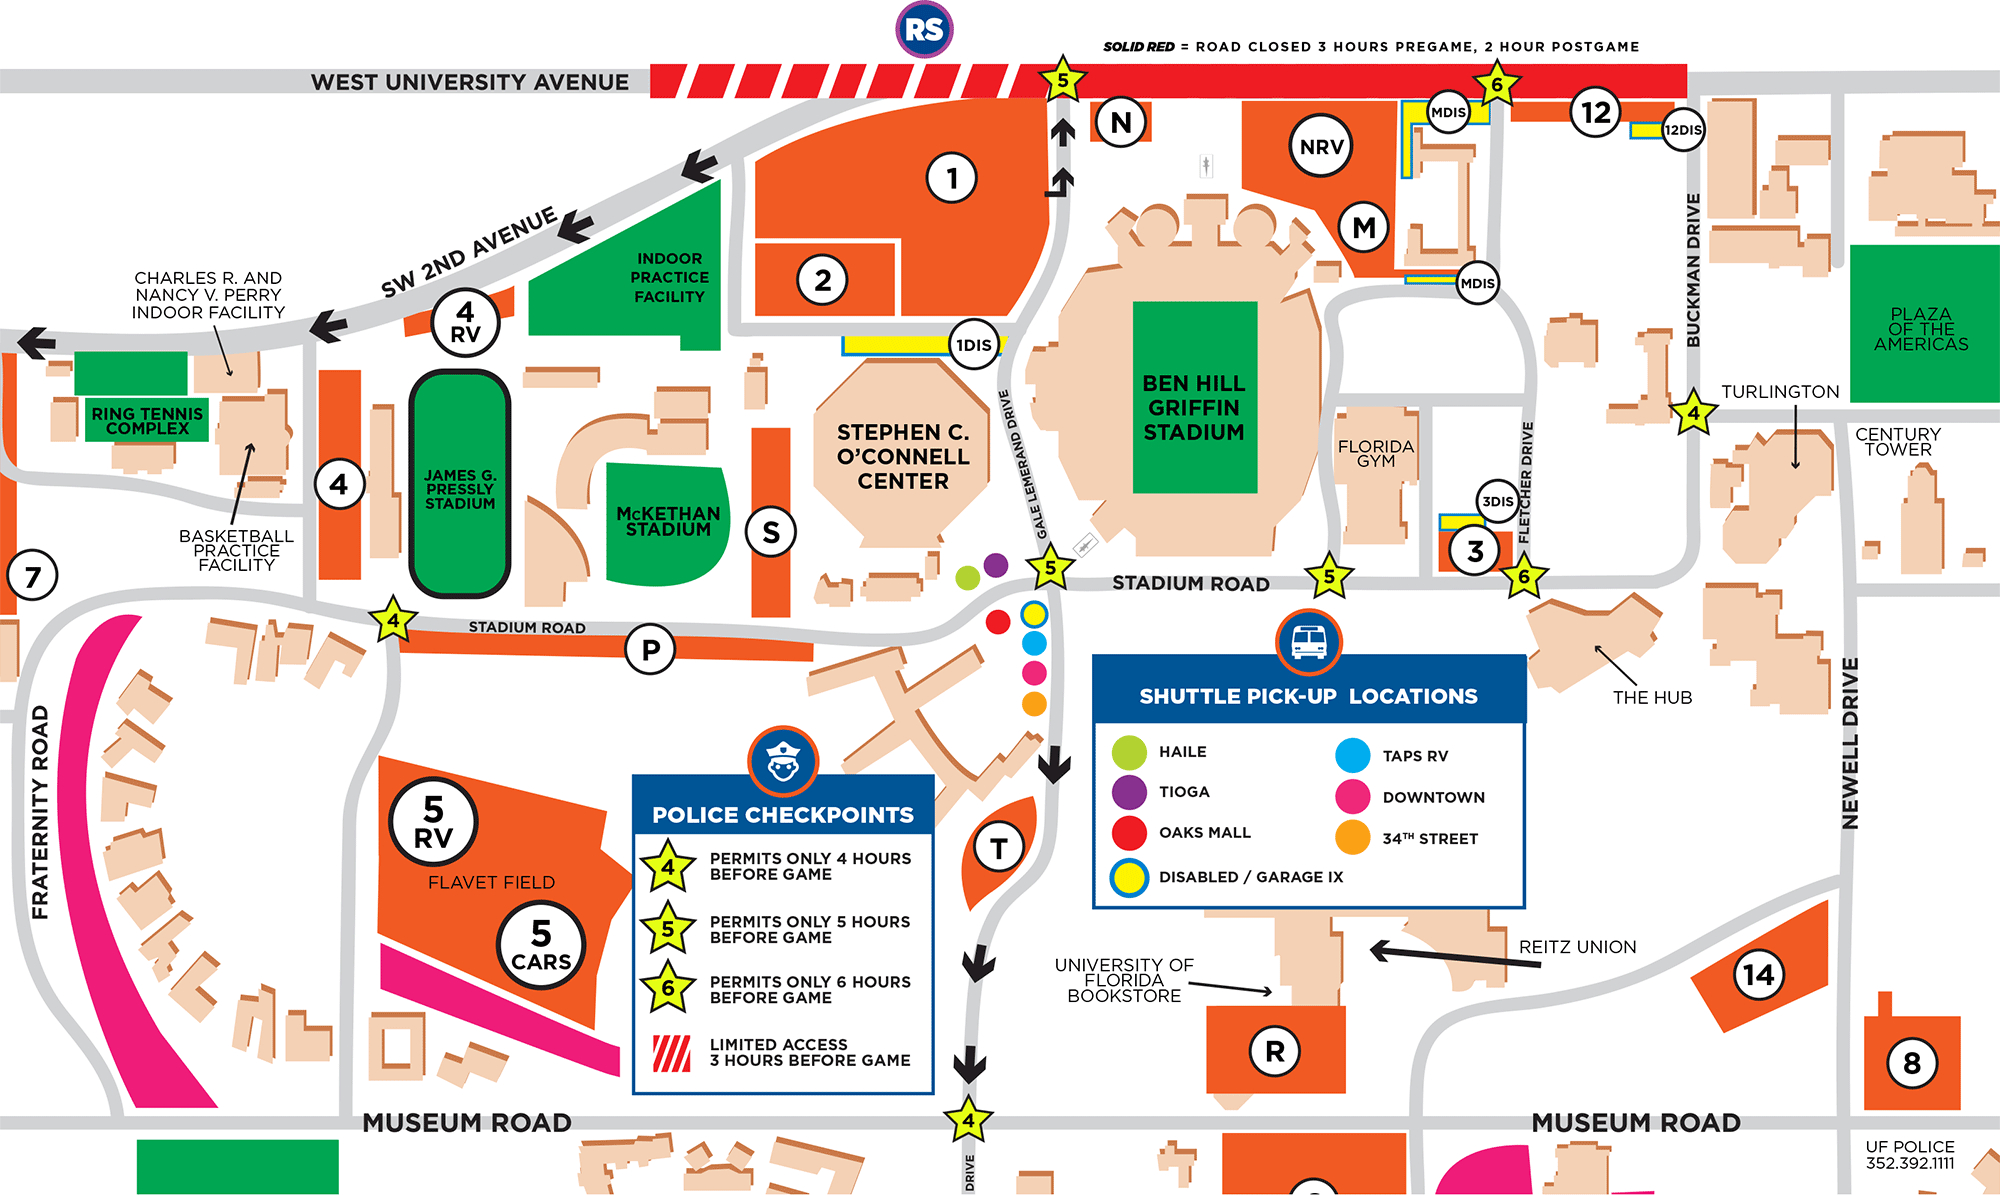 Parking - Football - Florida Gators - Florida Hospital South Map